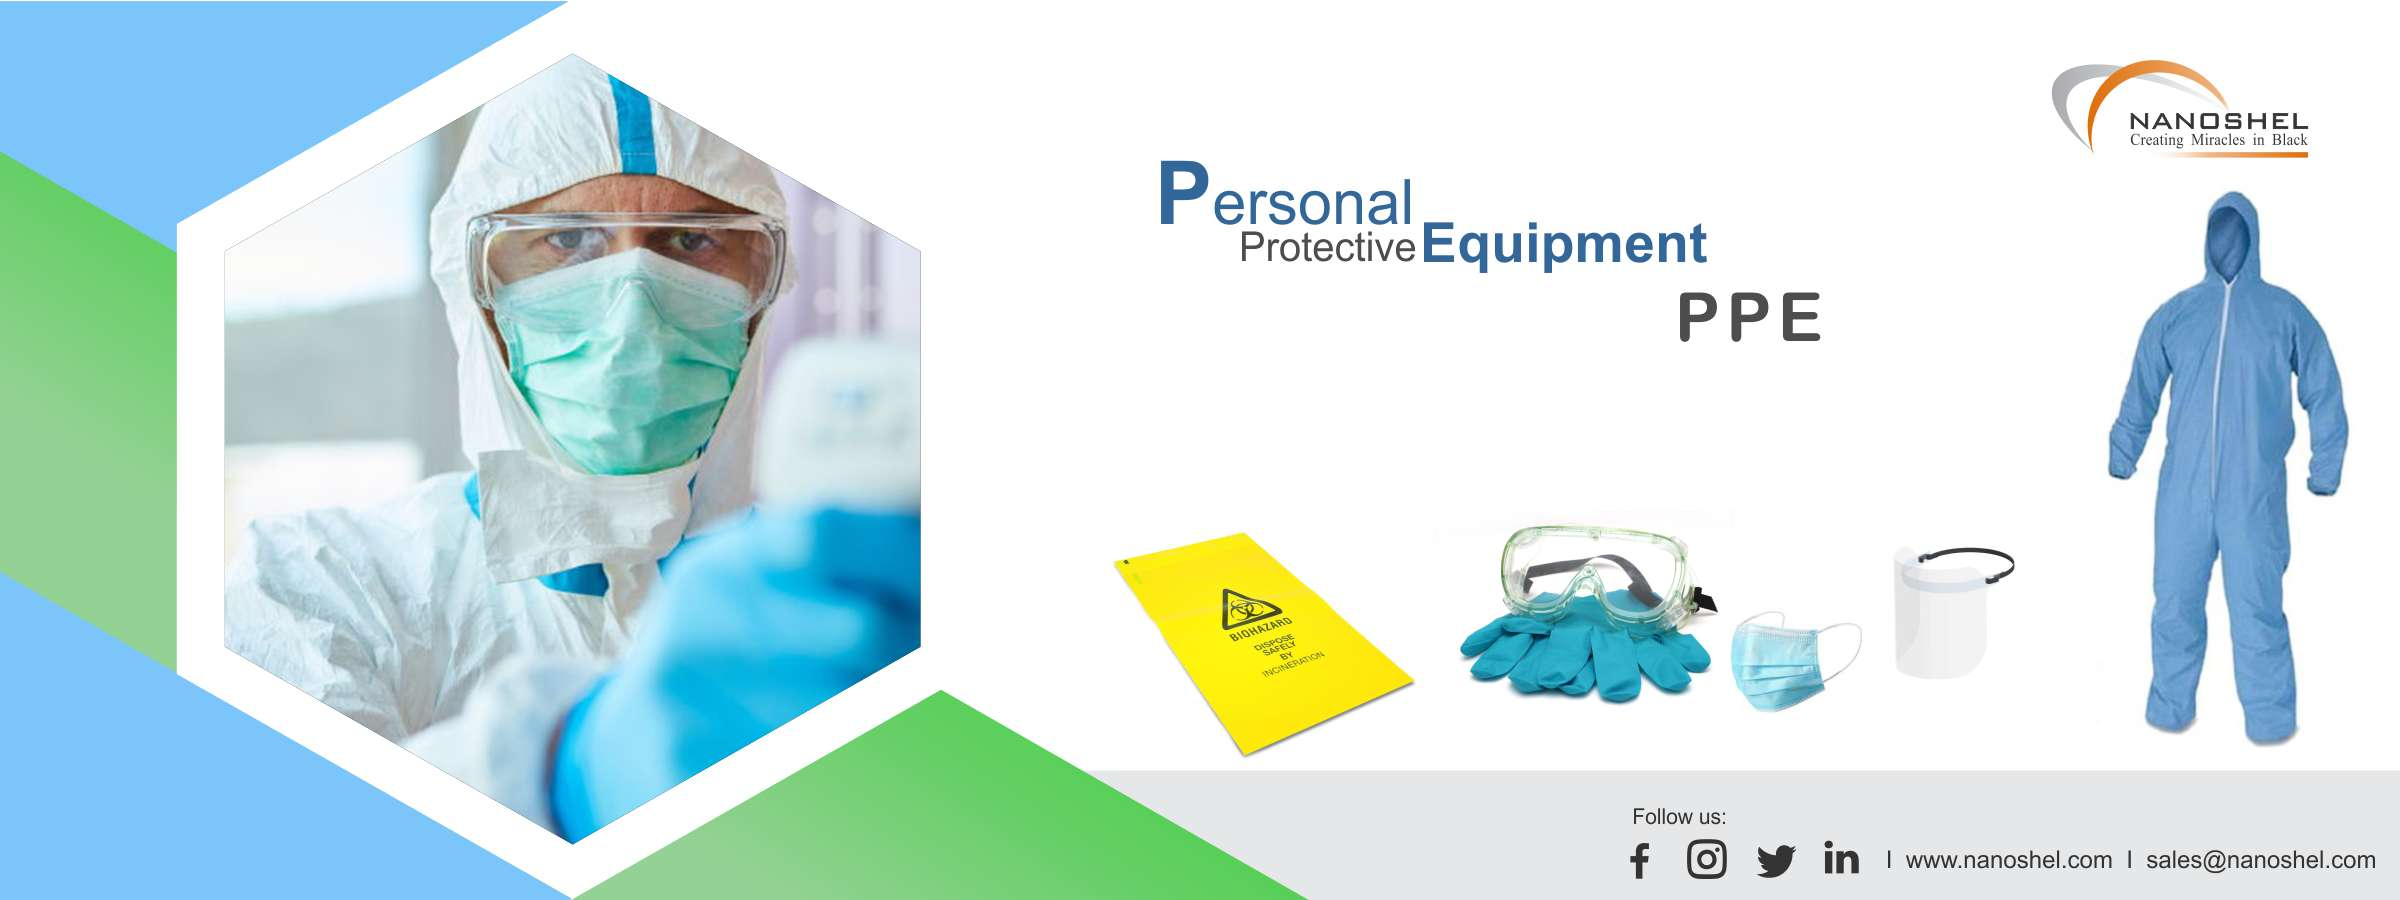 ersonal Protective Equipment Covid19 Testing